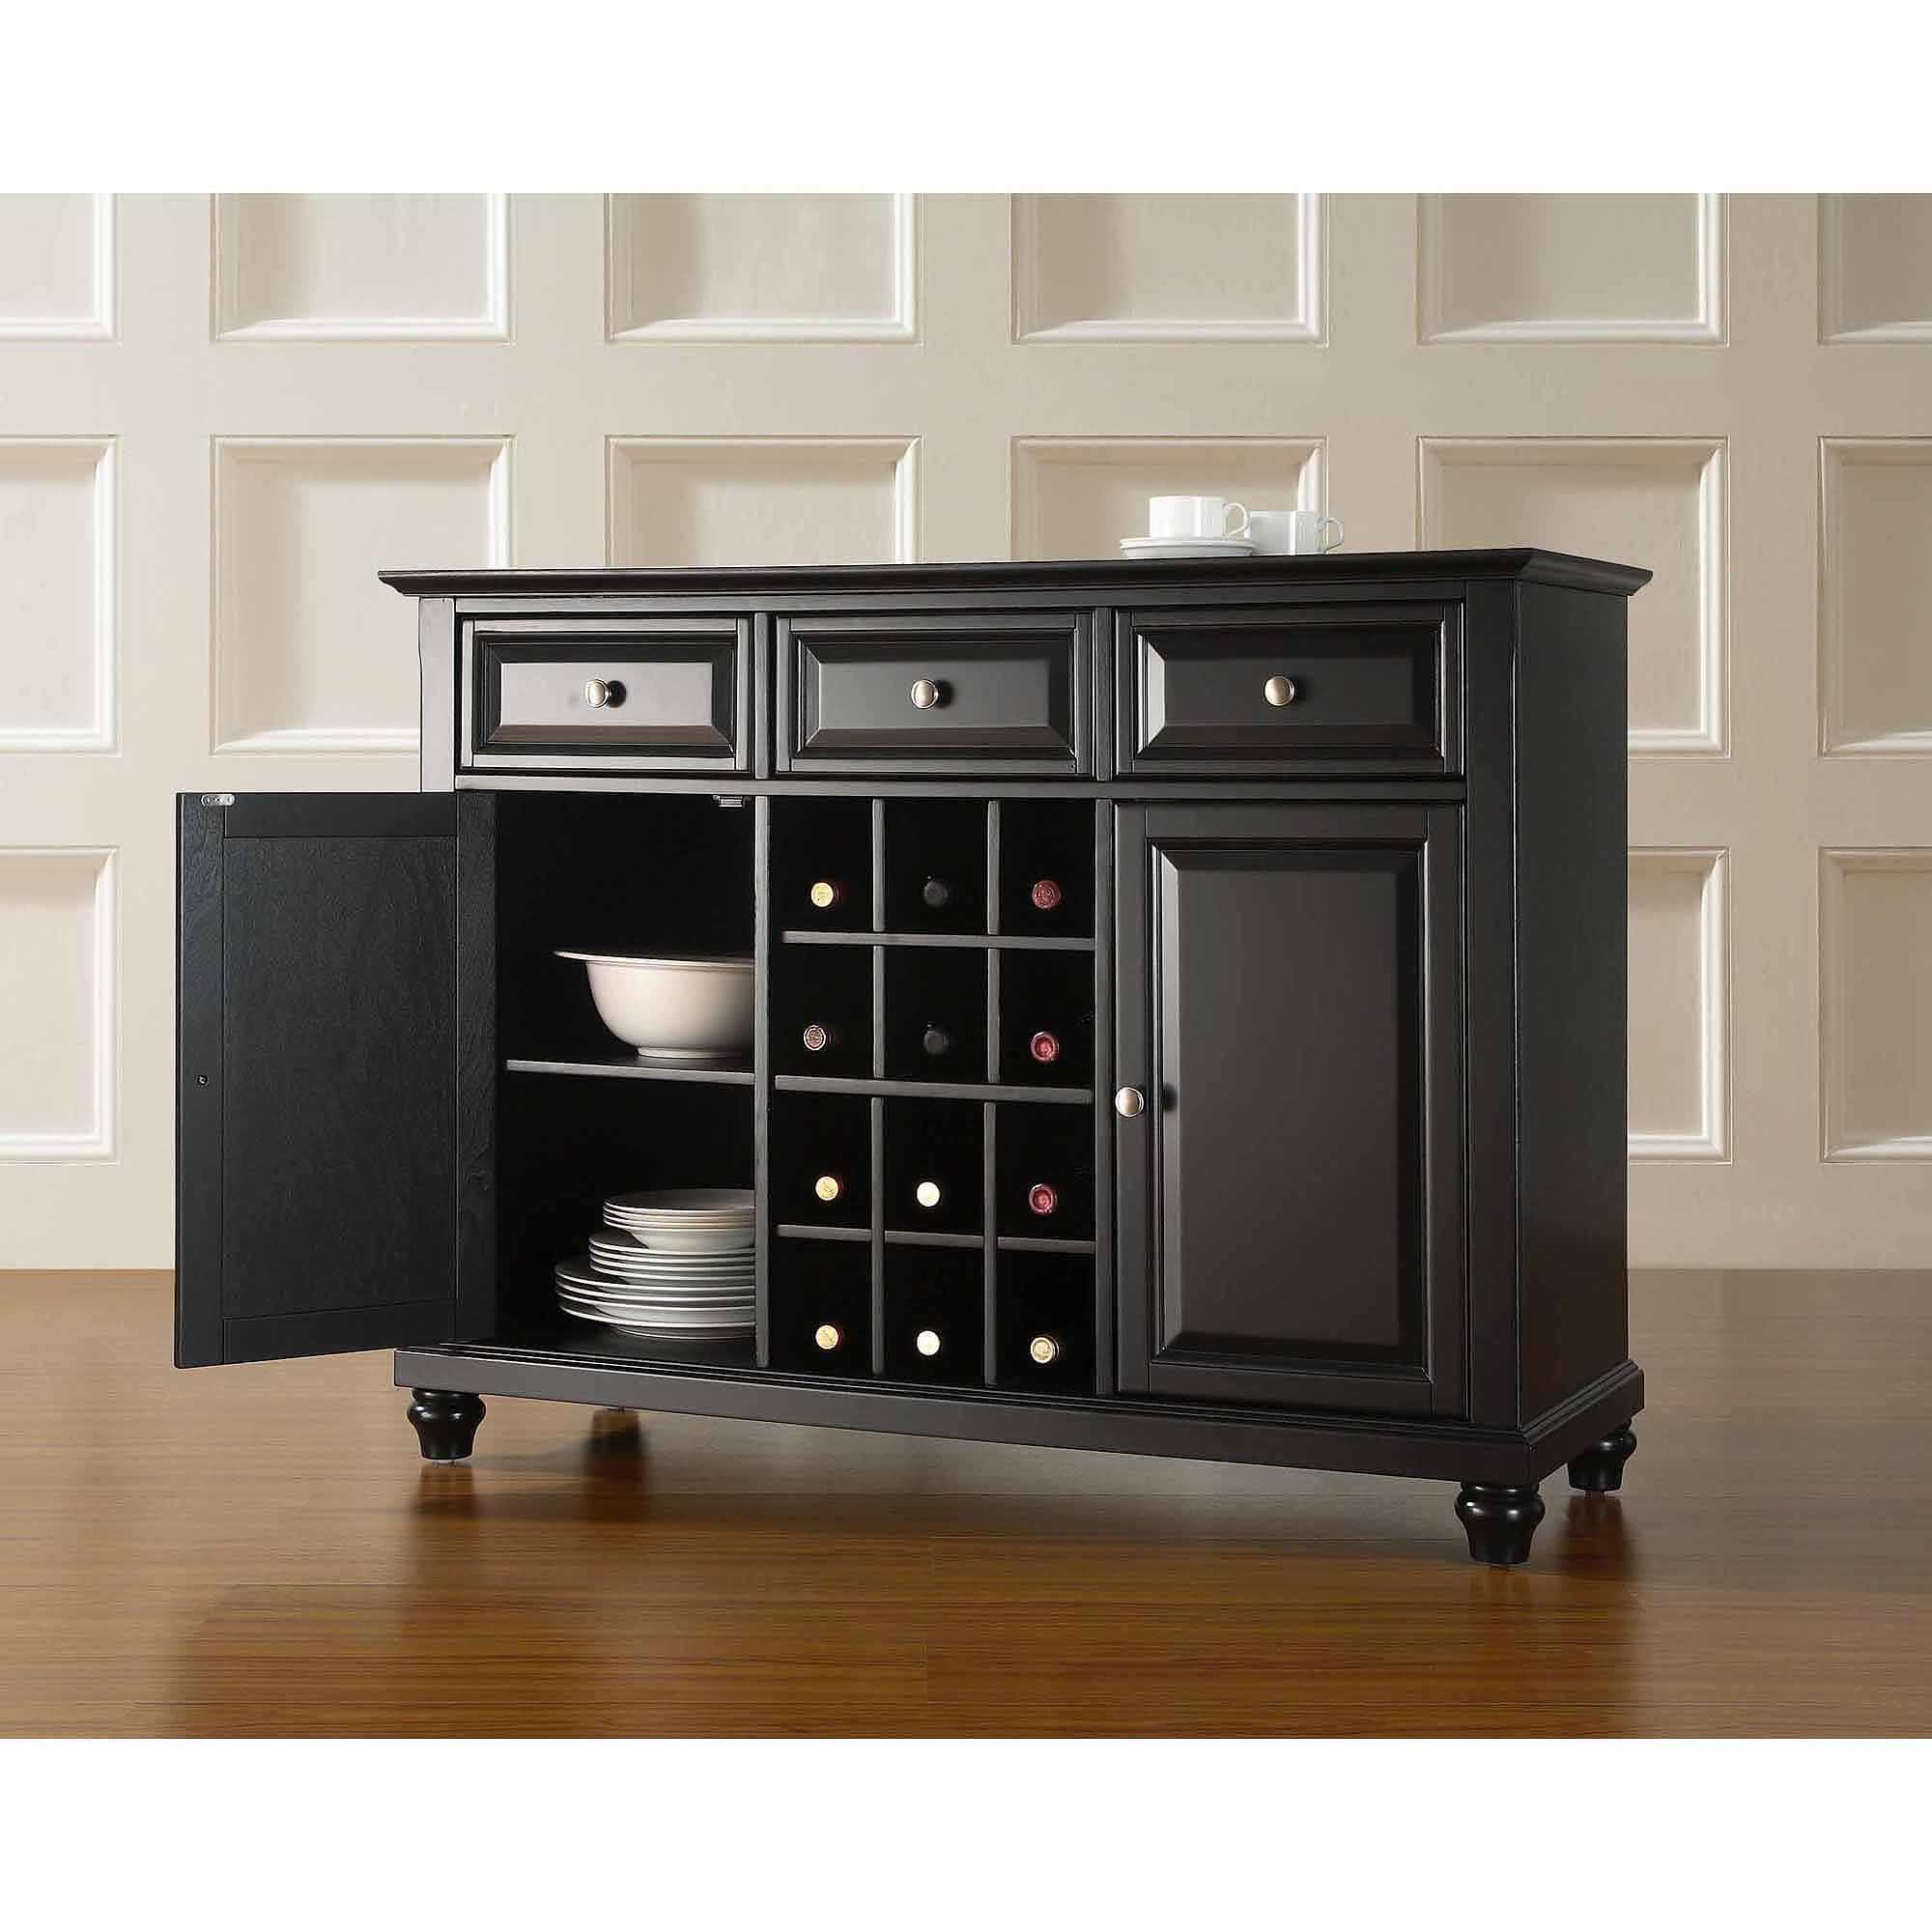 Crosley Furniture Cambridge Buffet Server and Sideboard Cabinet with Wine Storage by Generic